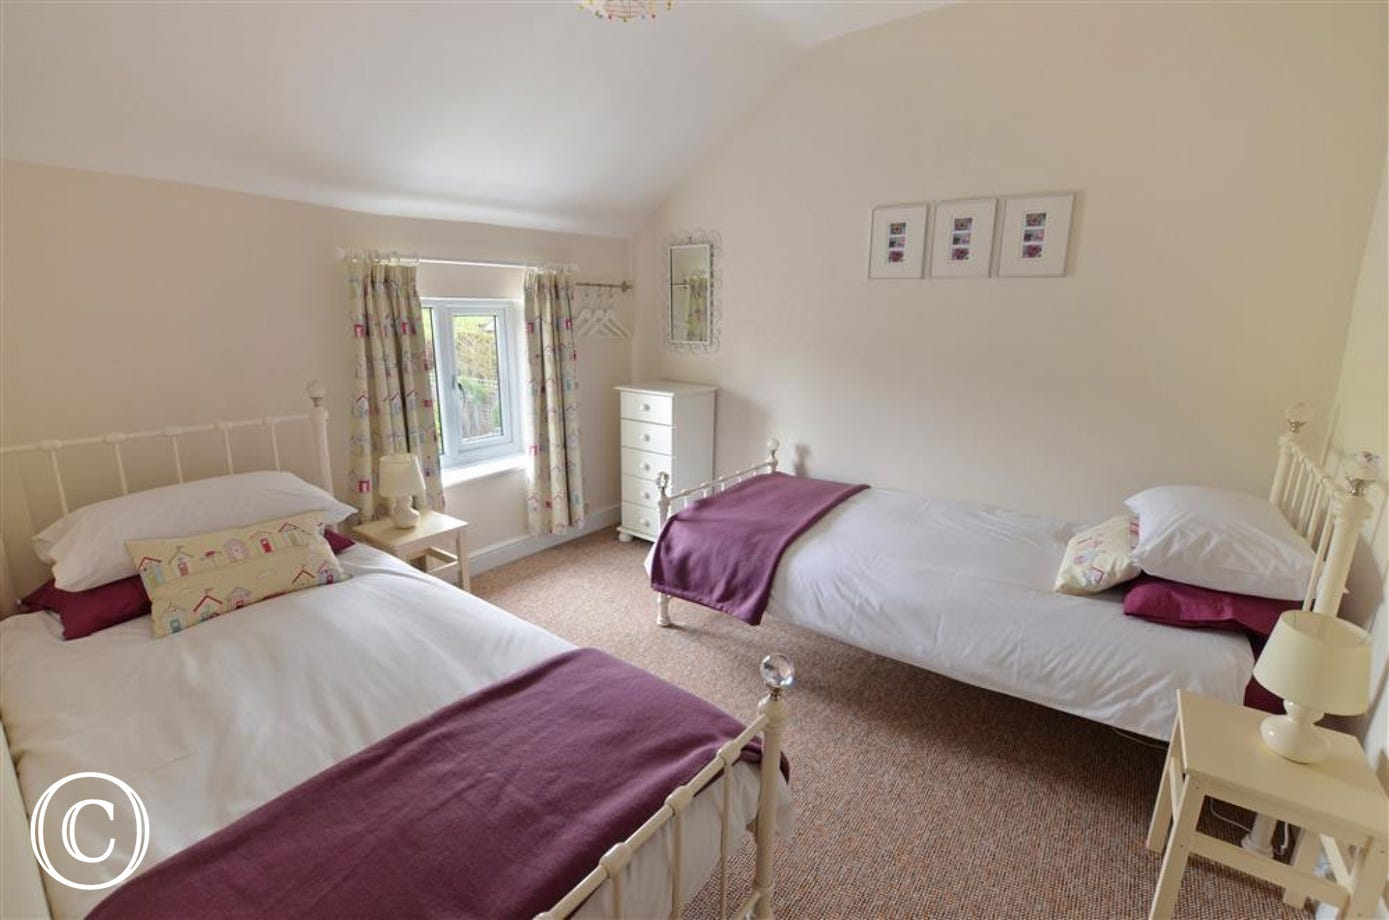 A twin room with lots of room and light, and soft furnishings with a beach hut theme.